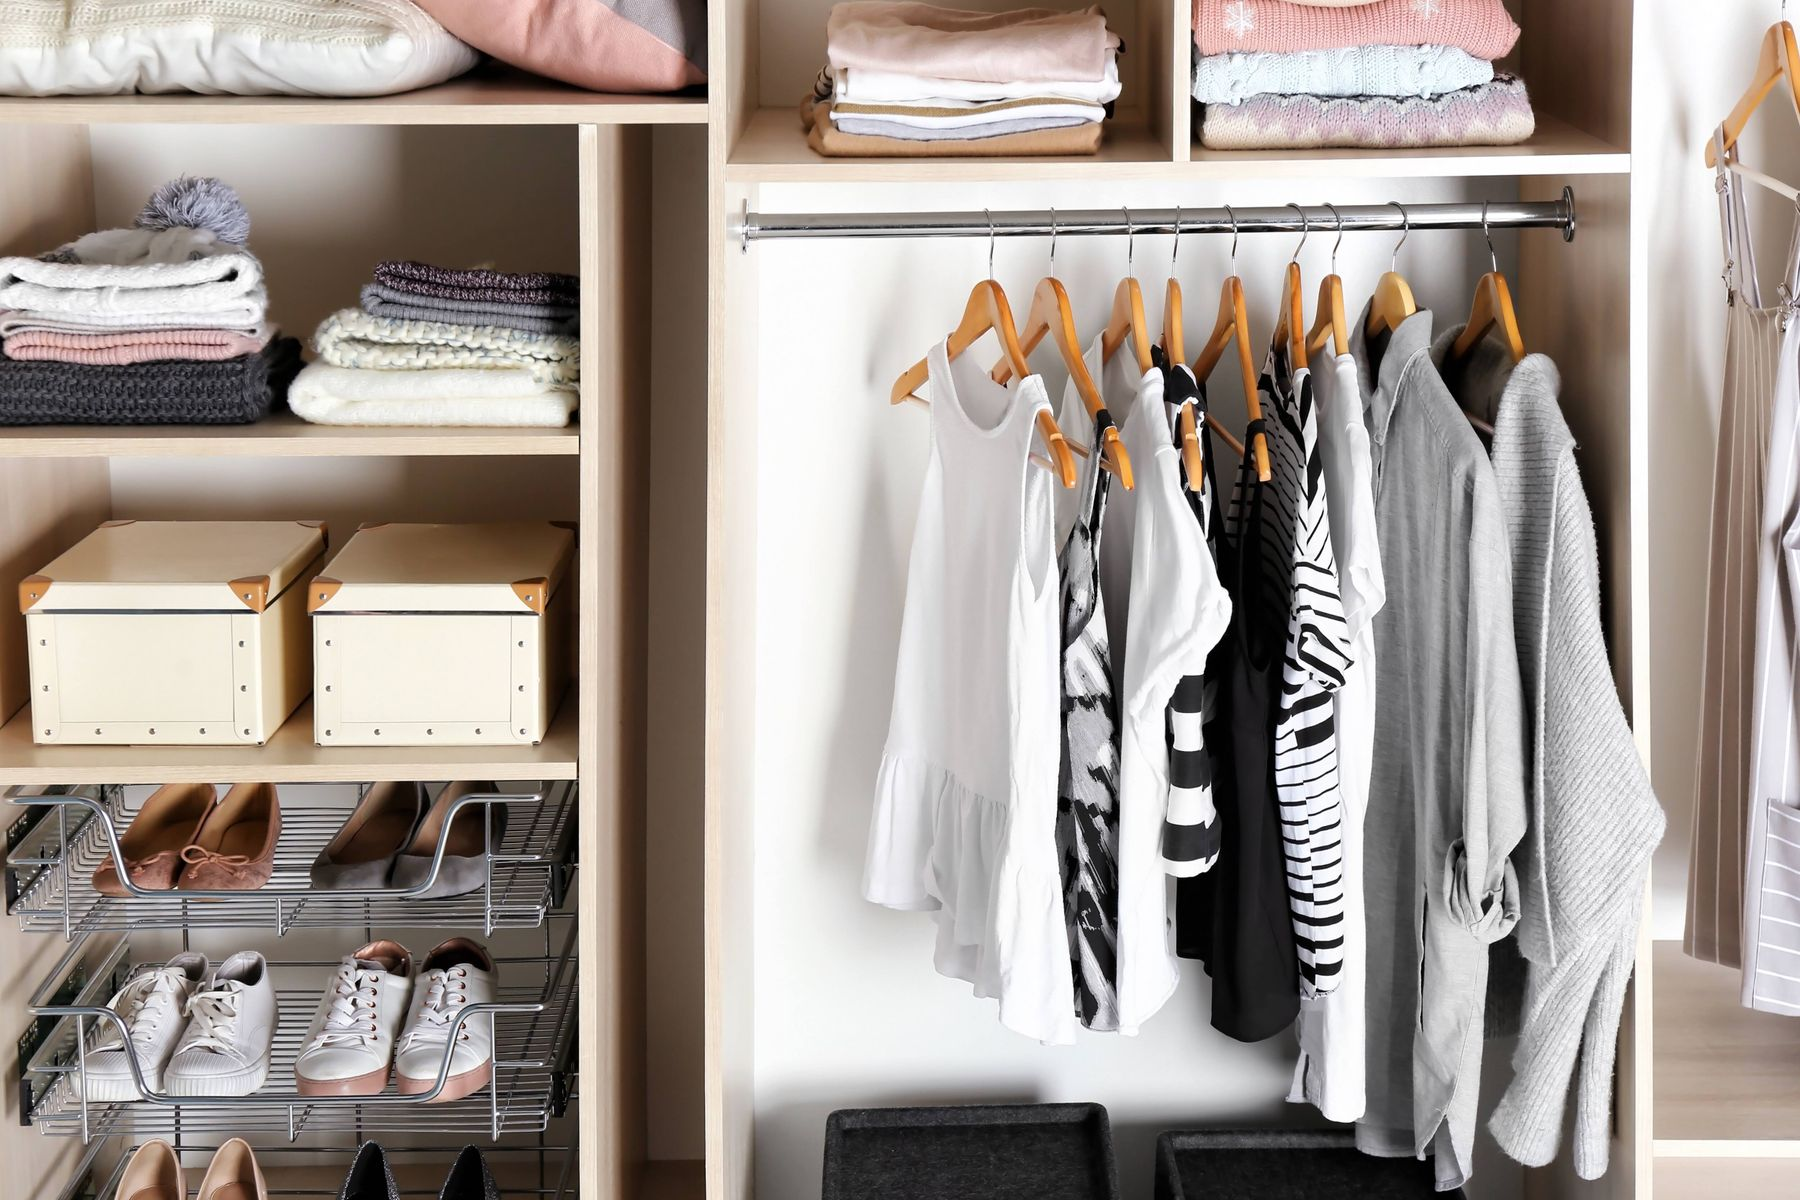 organisation in wardrobe as example